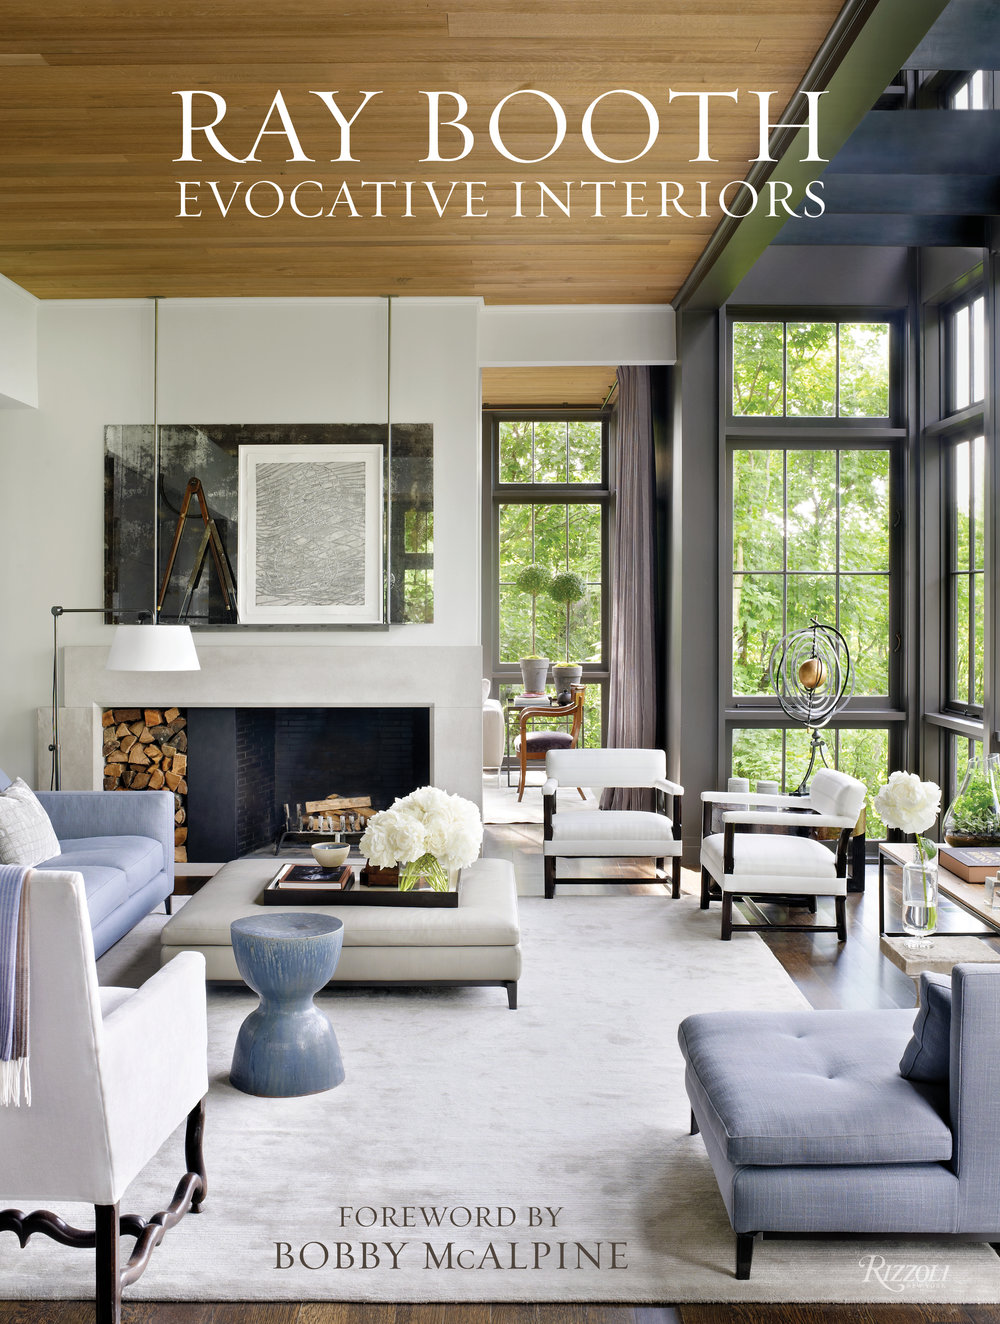 RayBooth_EvocativeInteriors_cover.jpg